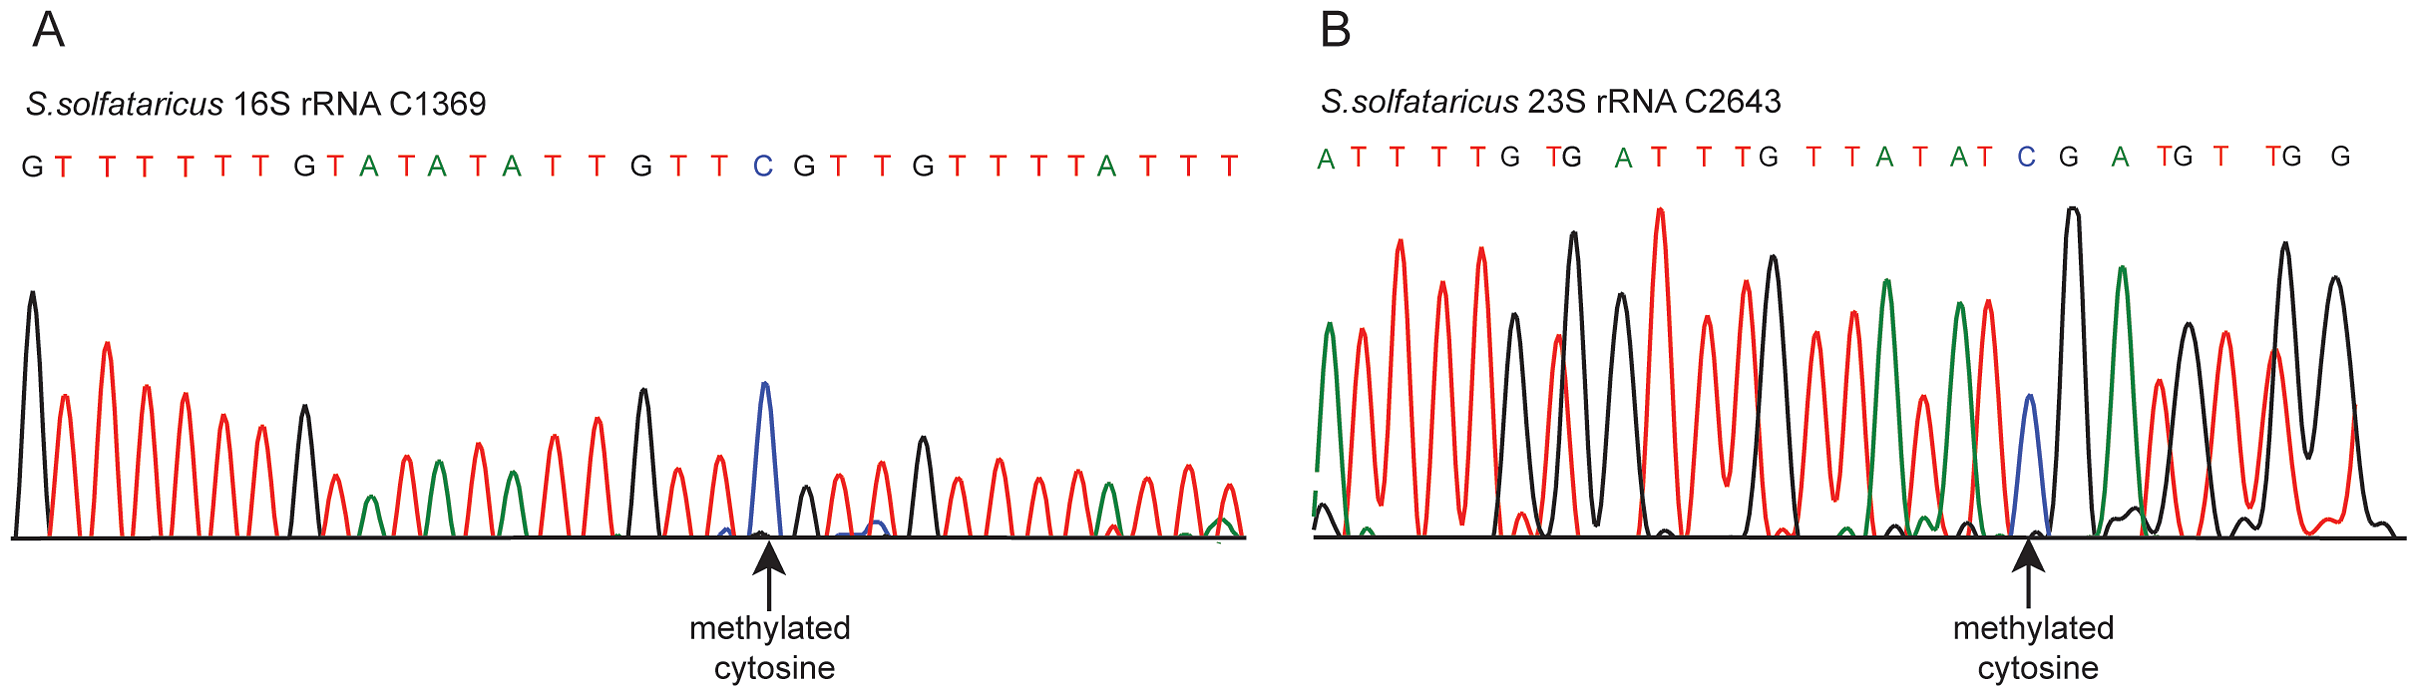 Sanger-based verification of two novel methylated positions in <i>S. solfataricus</i> rRNA identified using RNA-seq.